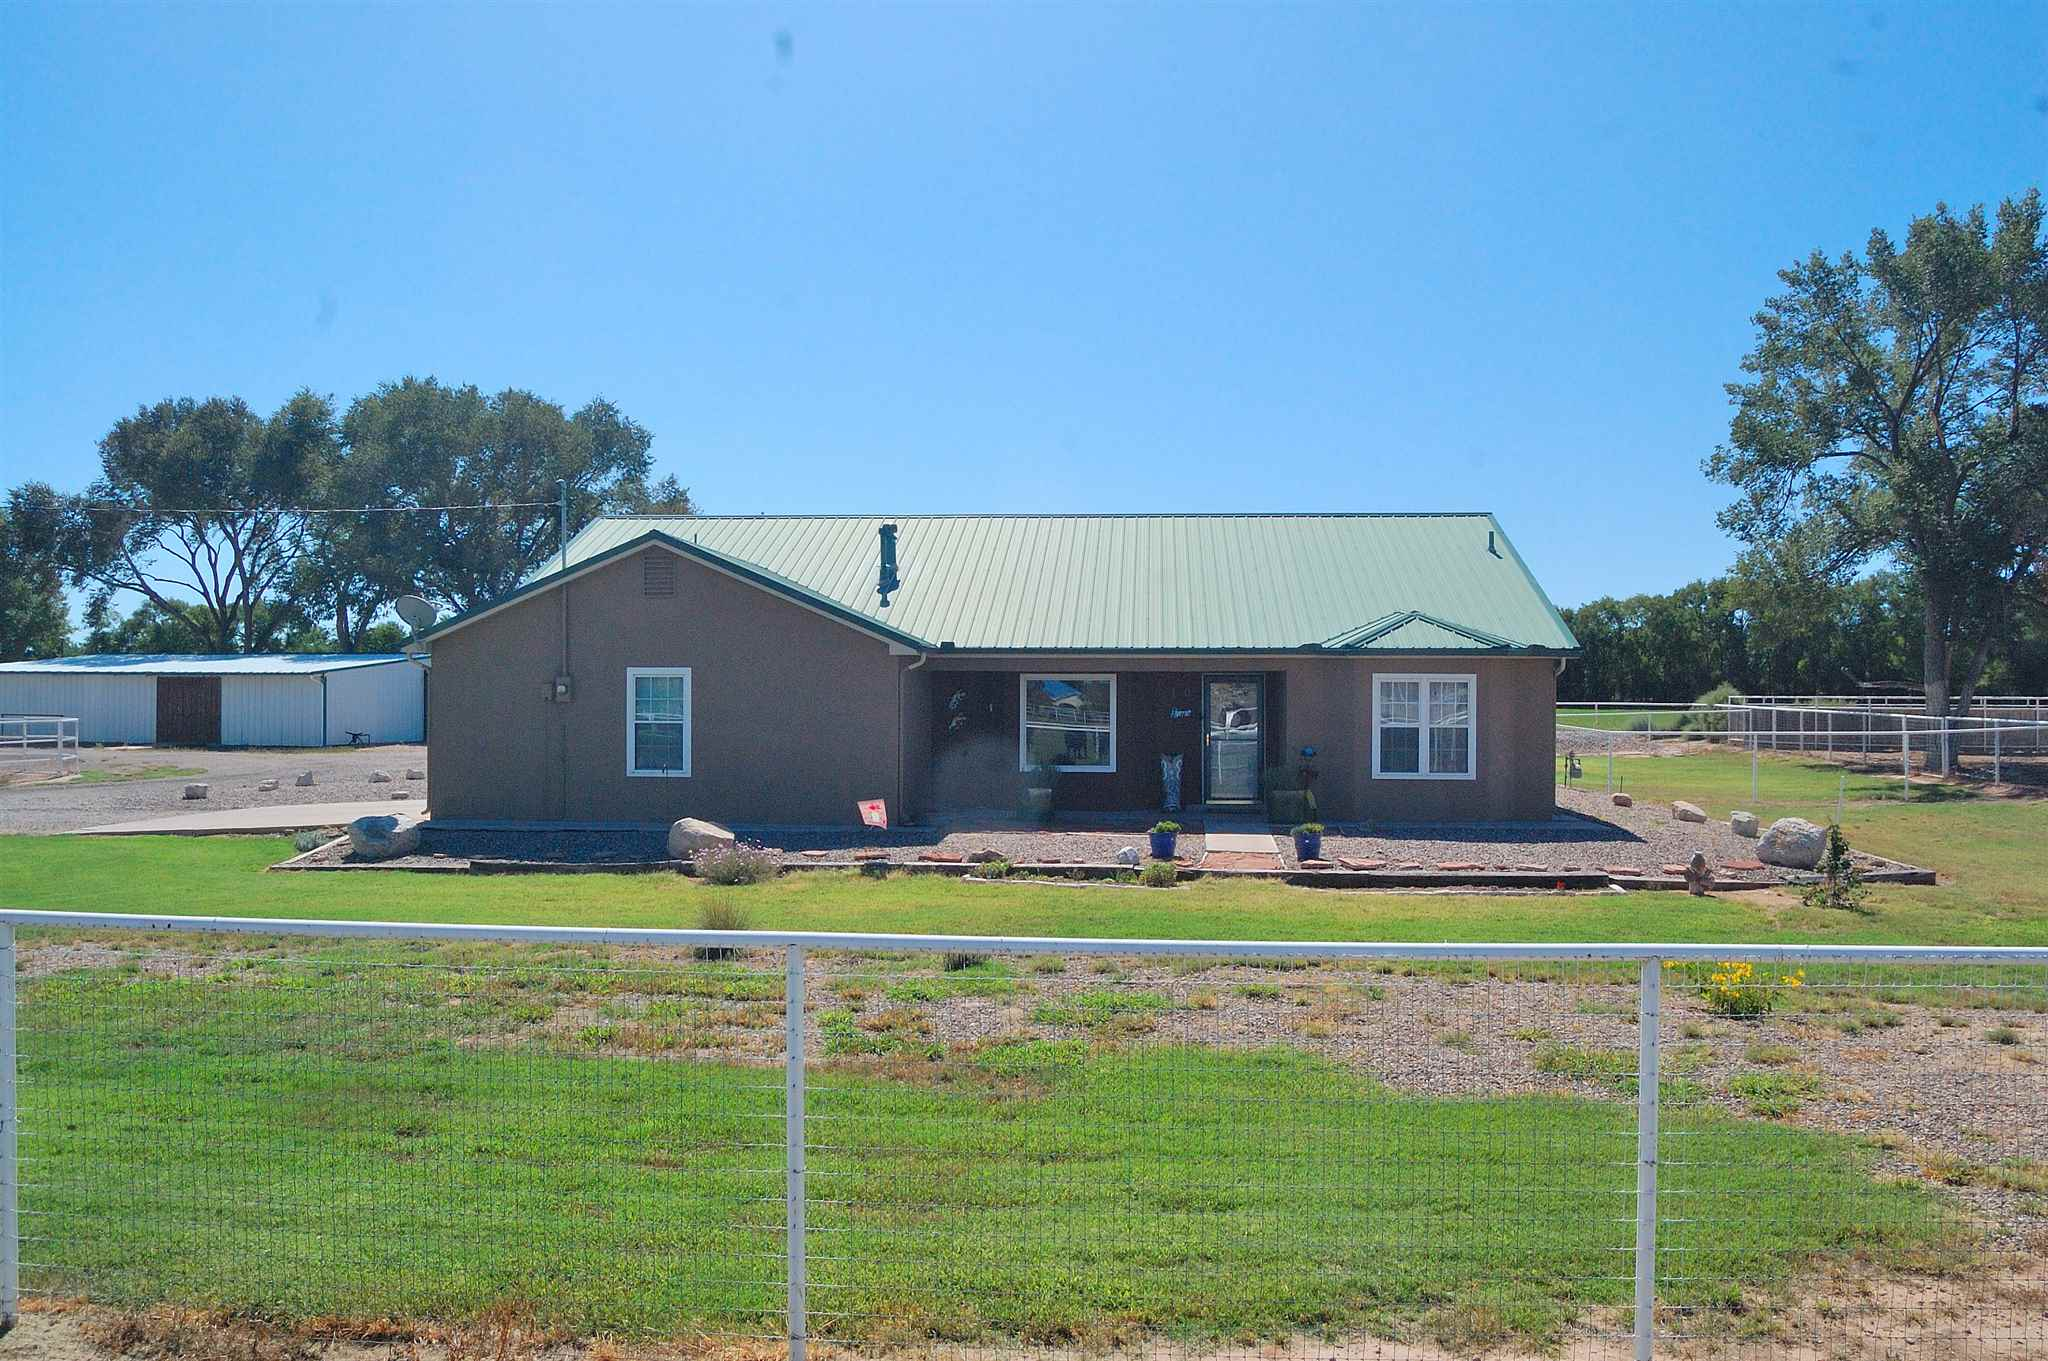 Country Life! Looking for a great home on a quiet country road w/ complete equestrian facilities? Consider this 1800+ sq ft home on 1.7 acres. 3 bedrooms, 2 baths to include a Jack & Jill for the kids. Open floor plan, refrigerated AC, new flooring, metal roof, fully landscaped and move in ready. The back yard is cross fenced with a covered patio and lawn area. Enjoy family time over looking the neighboring alfalfa fields lined with mature cottonwoods. The entire property is pipe fenced, 5 ft with wire, there's a 40 x 60 metal barn with 4 interior stalls, cedar lined tack room, wash bay, hay storage, water and power. Several dbl gates for easy trailer access. The 8000+ sq ft arena is fenced w/ two 12 x 12 stalls, & 2 additional outside pens. Call today for your personal viewing.